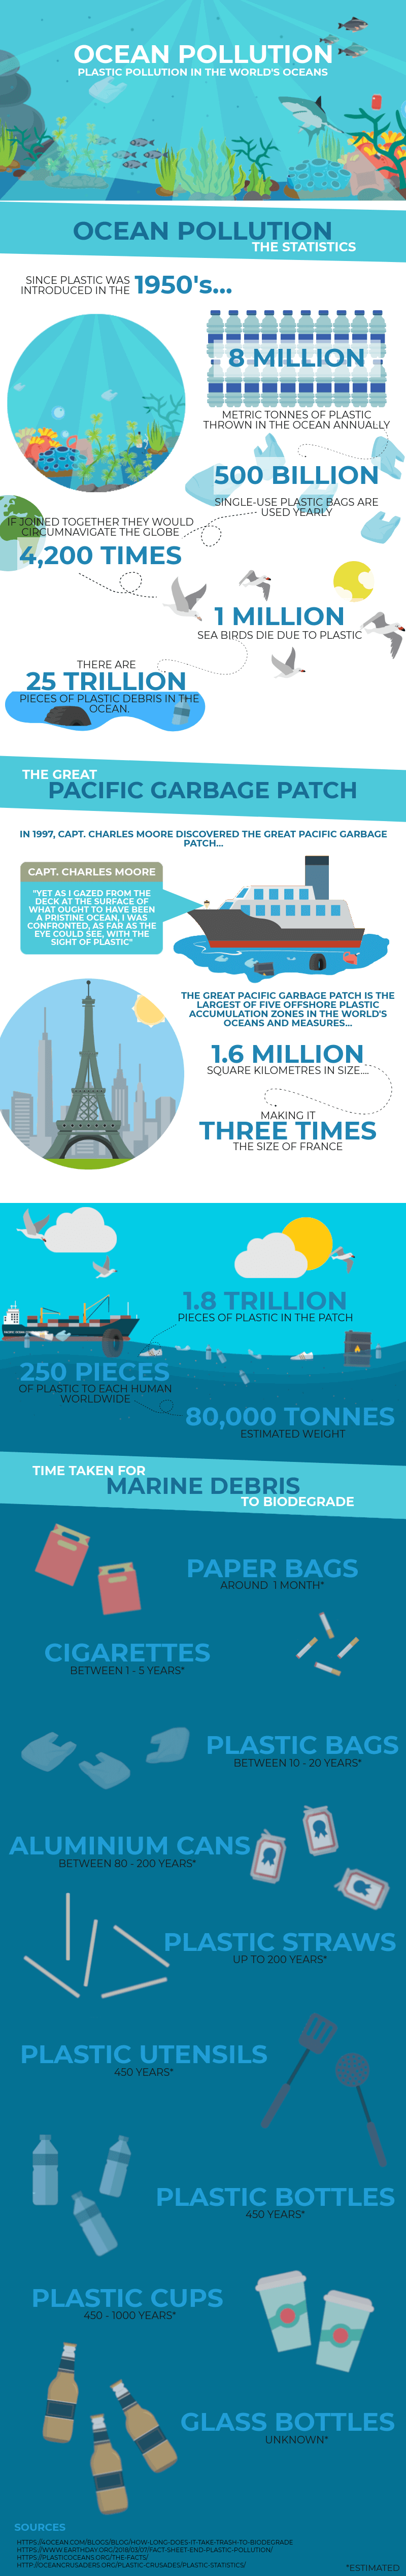 Ocean Pollution Infographic: Plastic pollution stats in the world